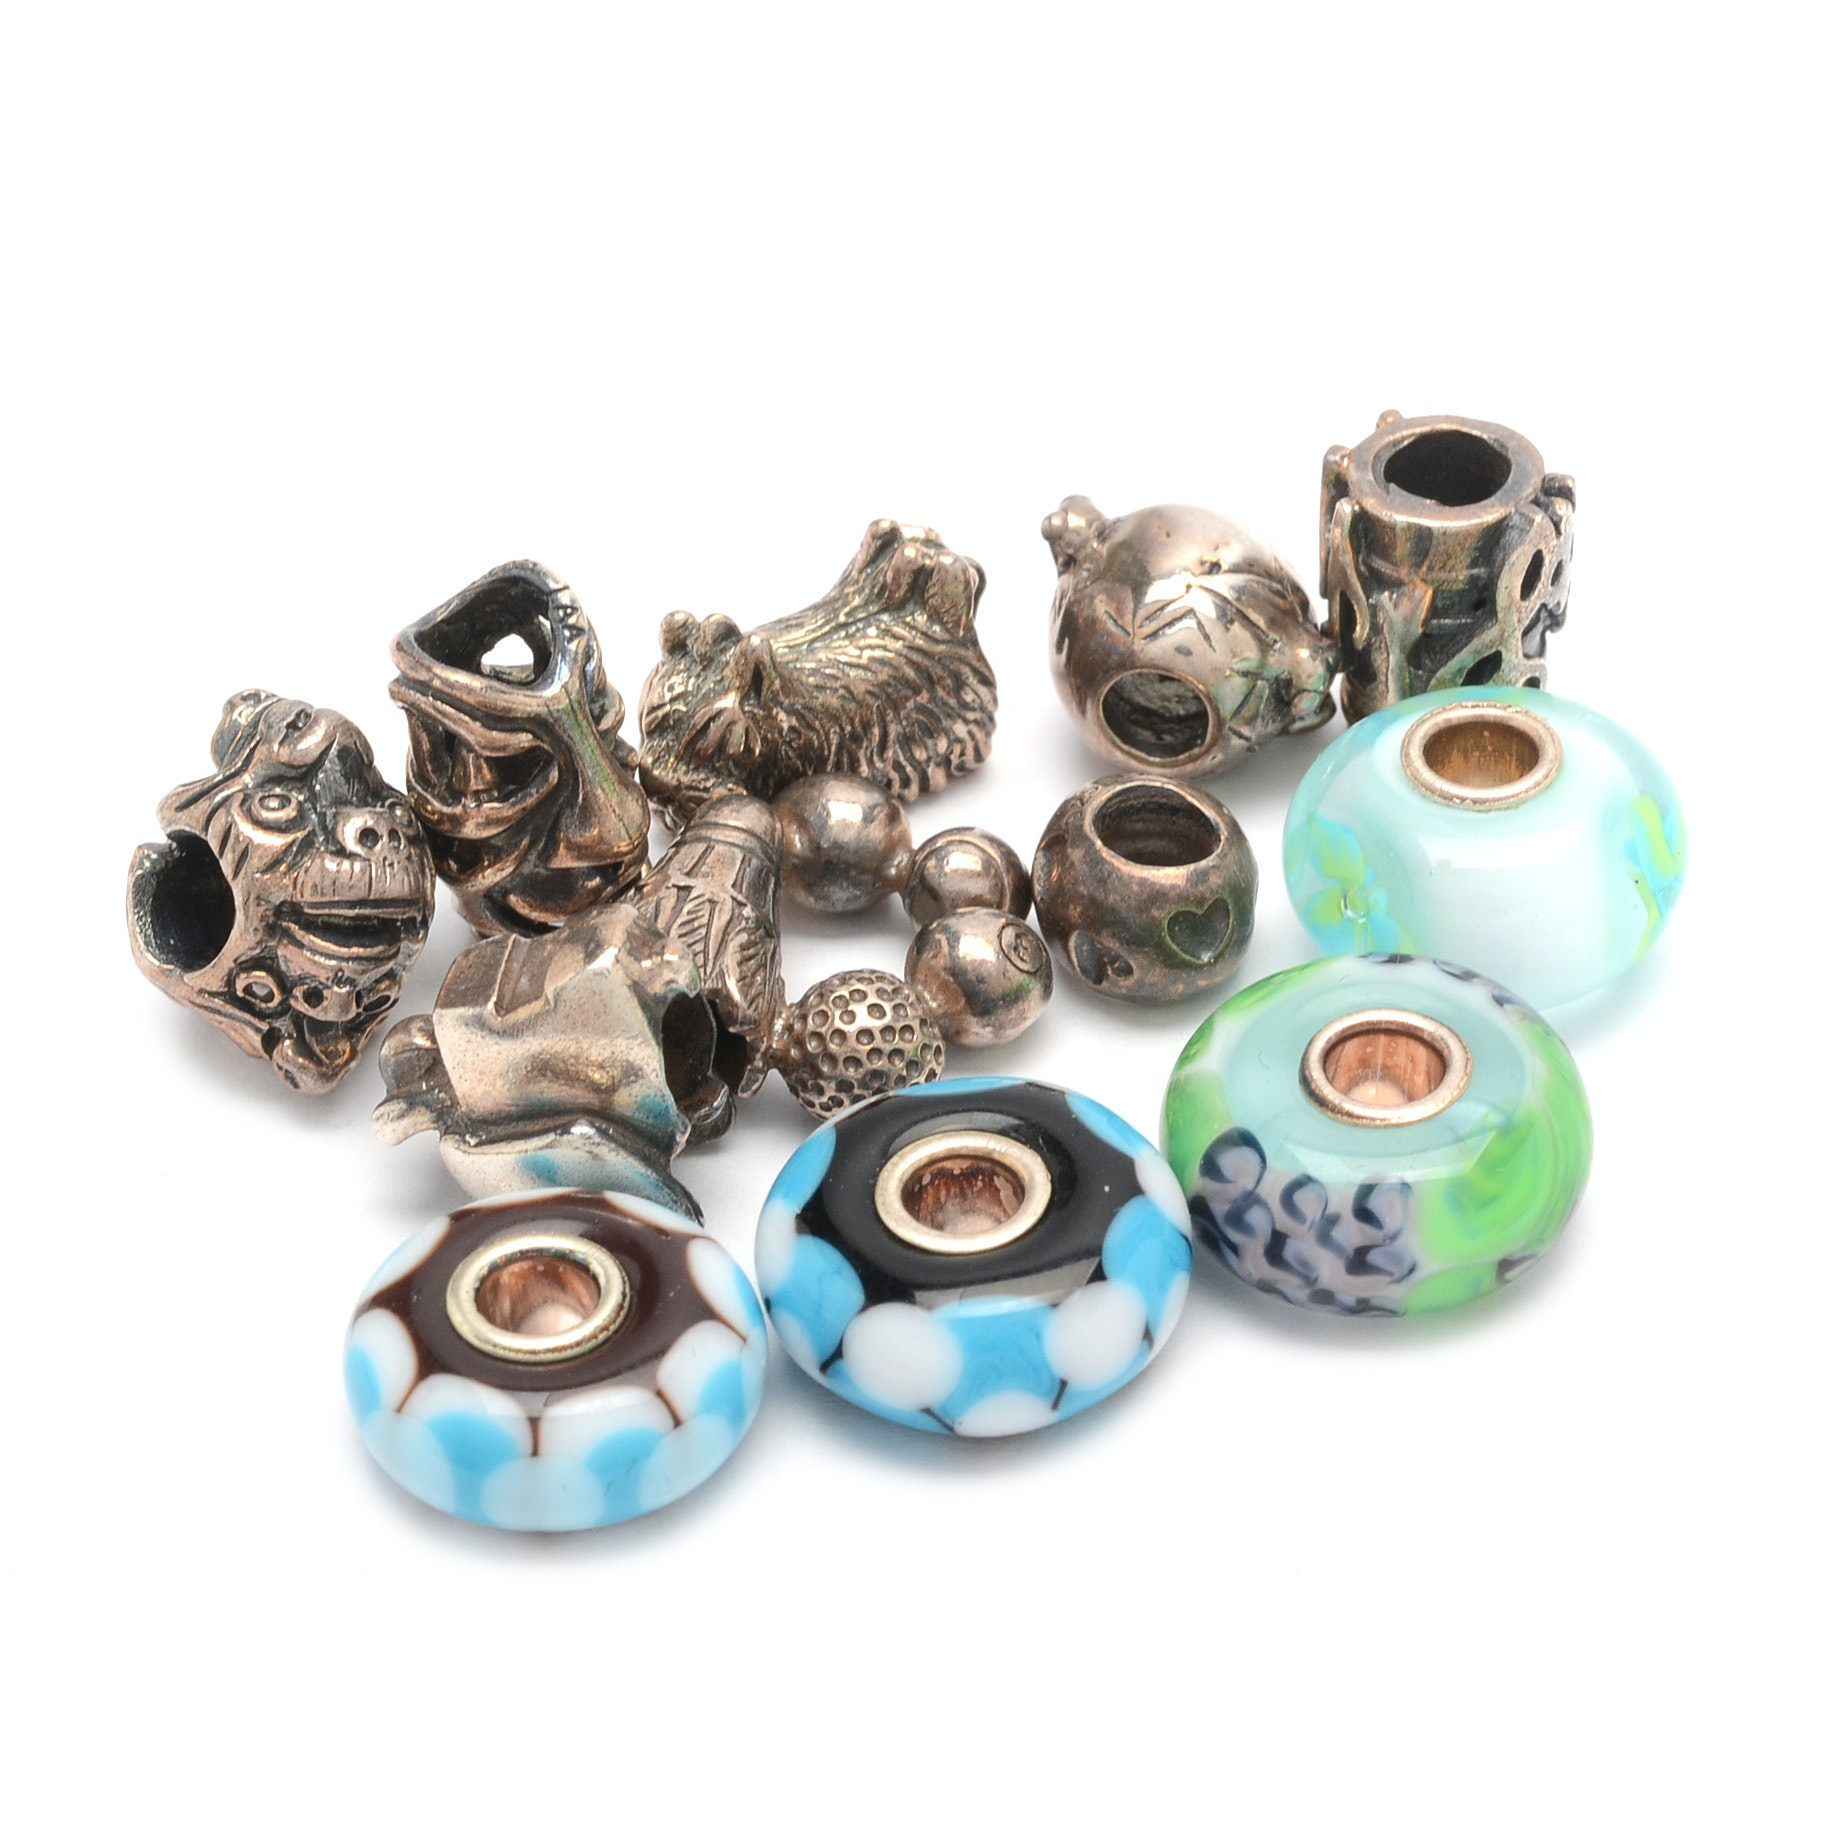 Trollbeads Handcrafted Sterling Silver and Art Glass Beads